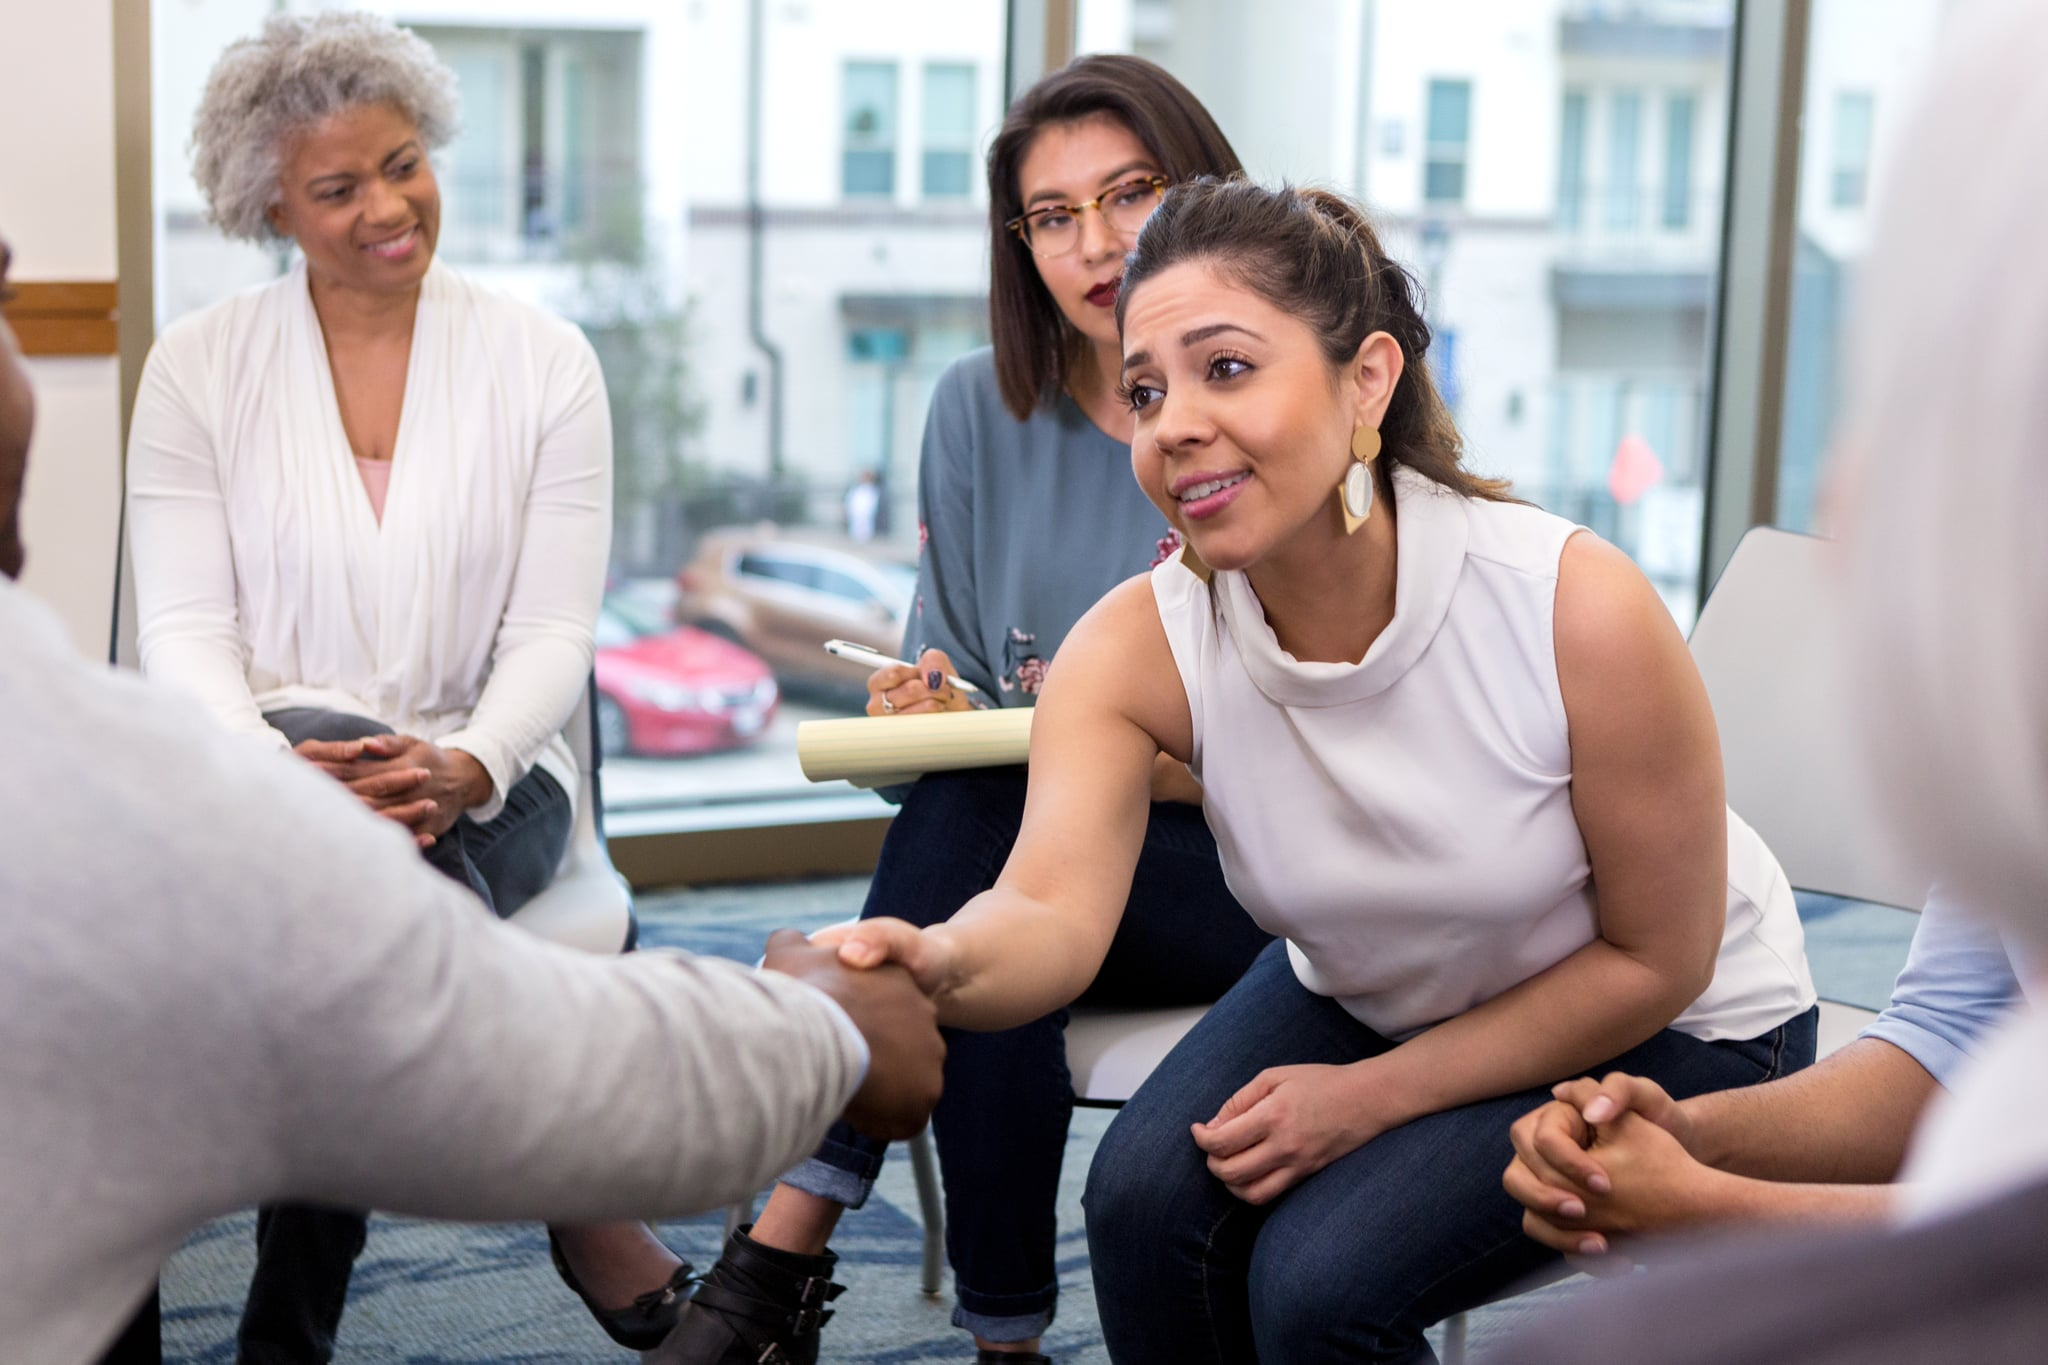 A serious young businesswoman sits with colleagues and reaches forward to shake hands with an unseen new client.